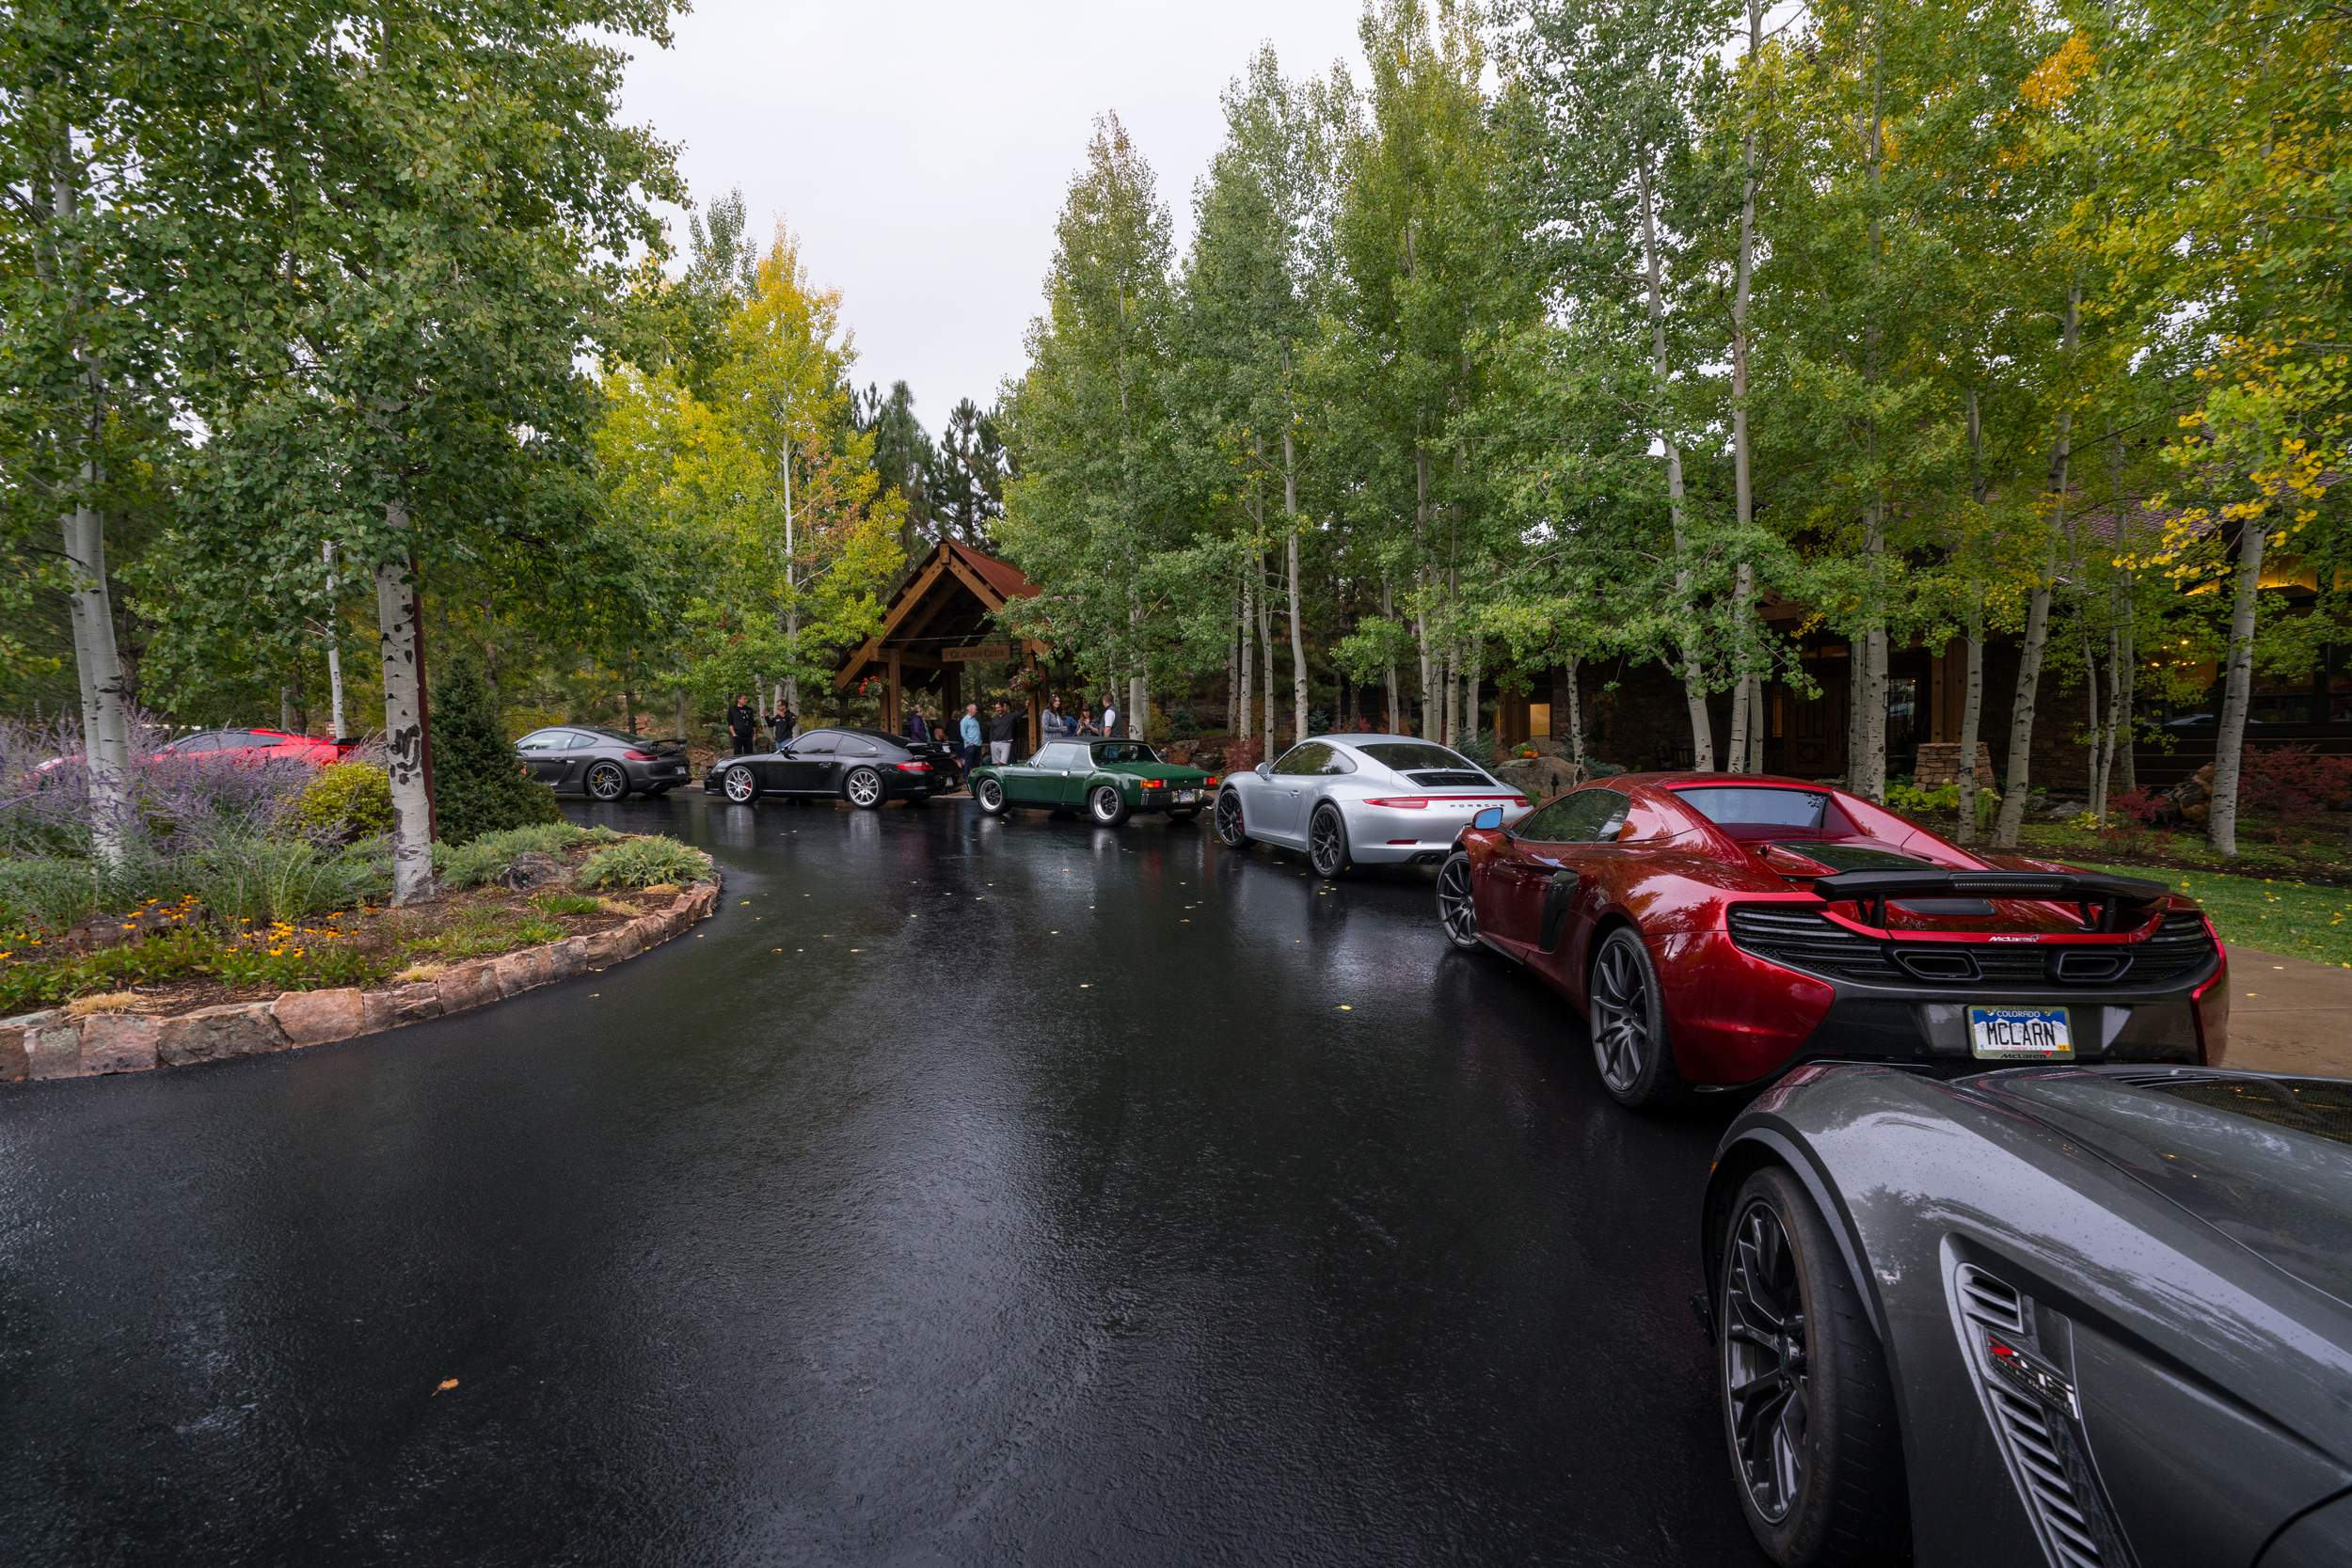 Durango man diagnosed with cancer has unfor table day with cars